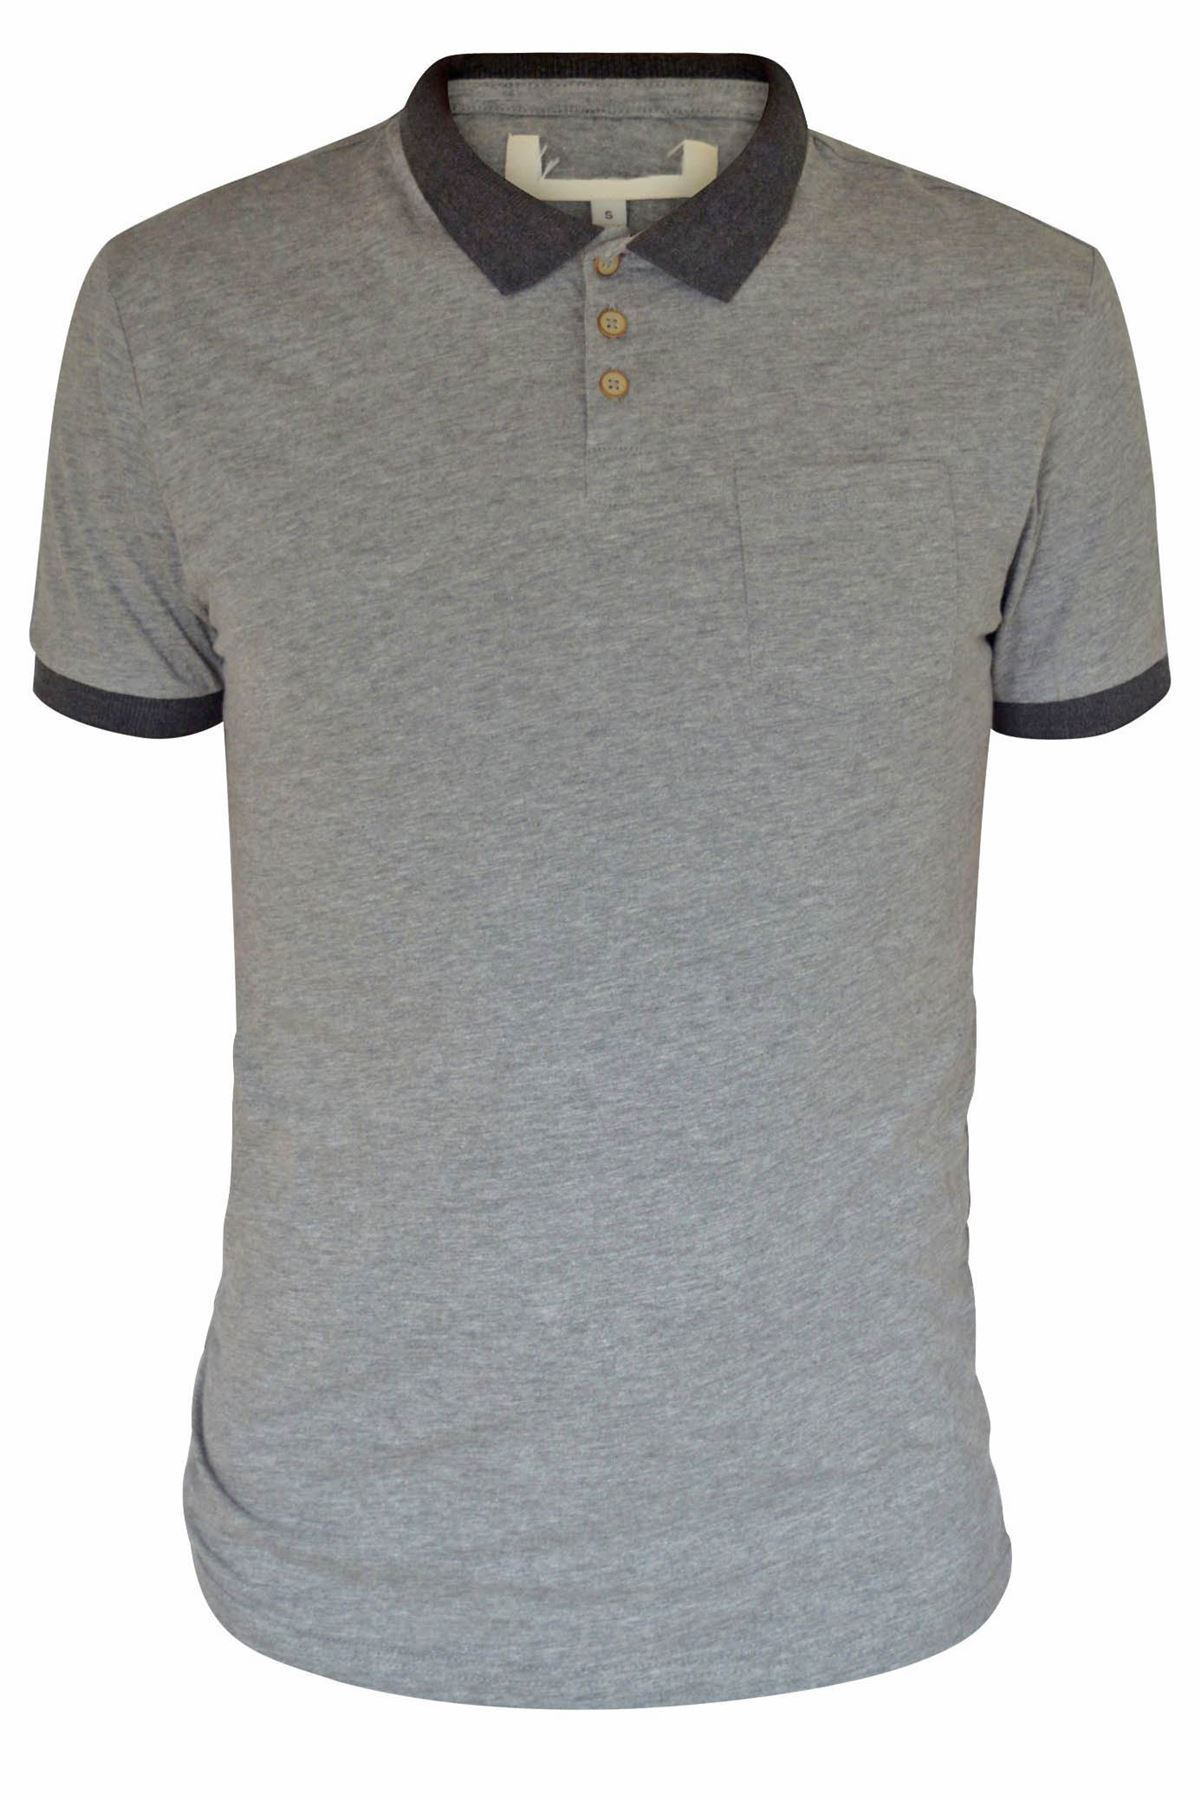 H-amp-M-Mens-Cotton-Polo-Shirts-SALE-Was-22 thumbnail 9